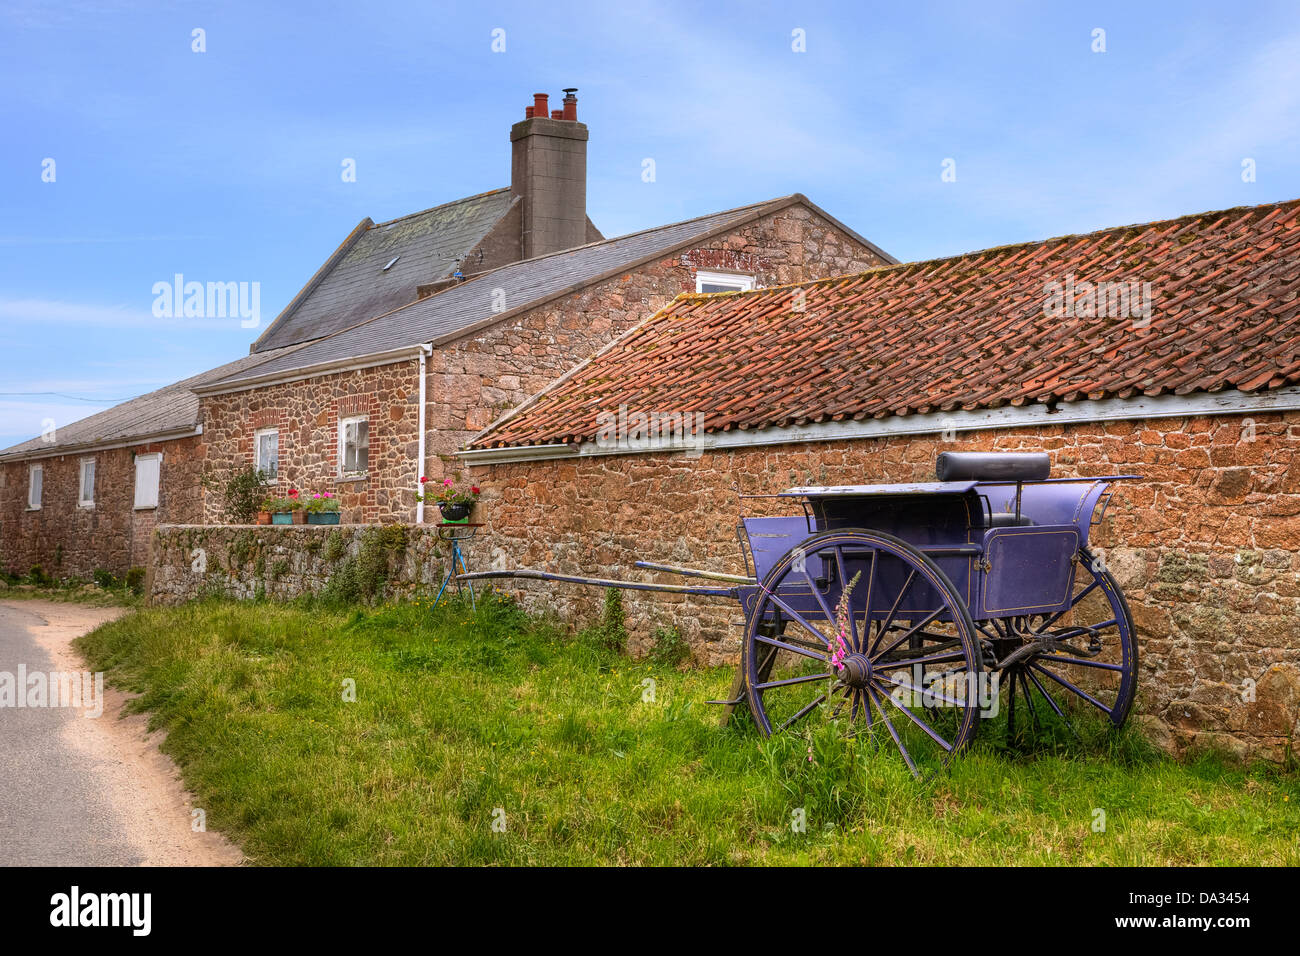 old farmhouse with carriage on Jersey, United Kingdom - Stock Image